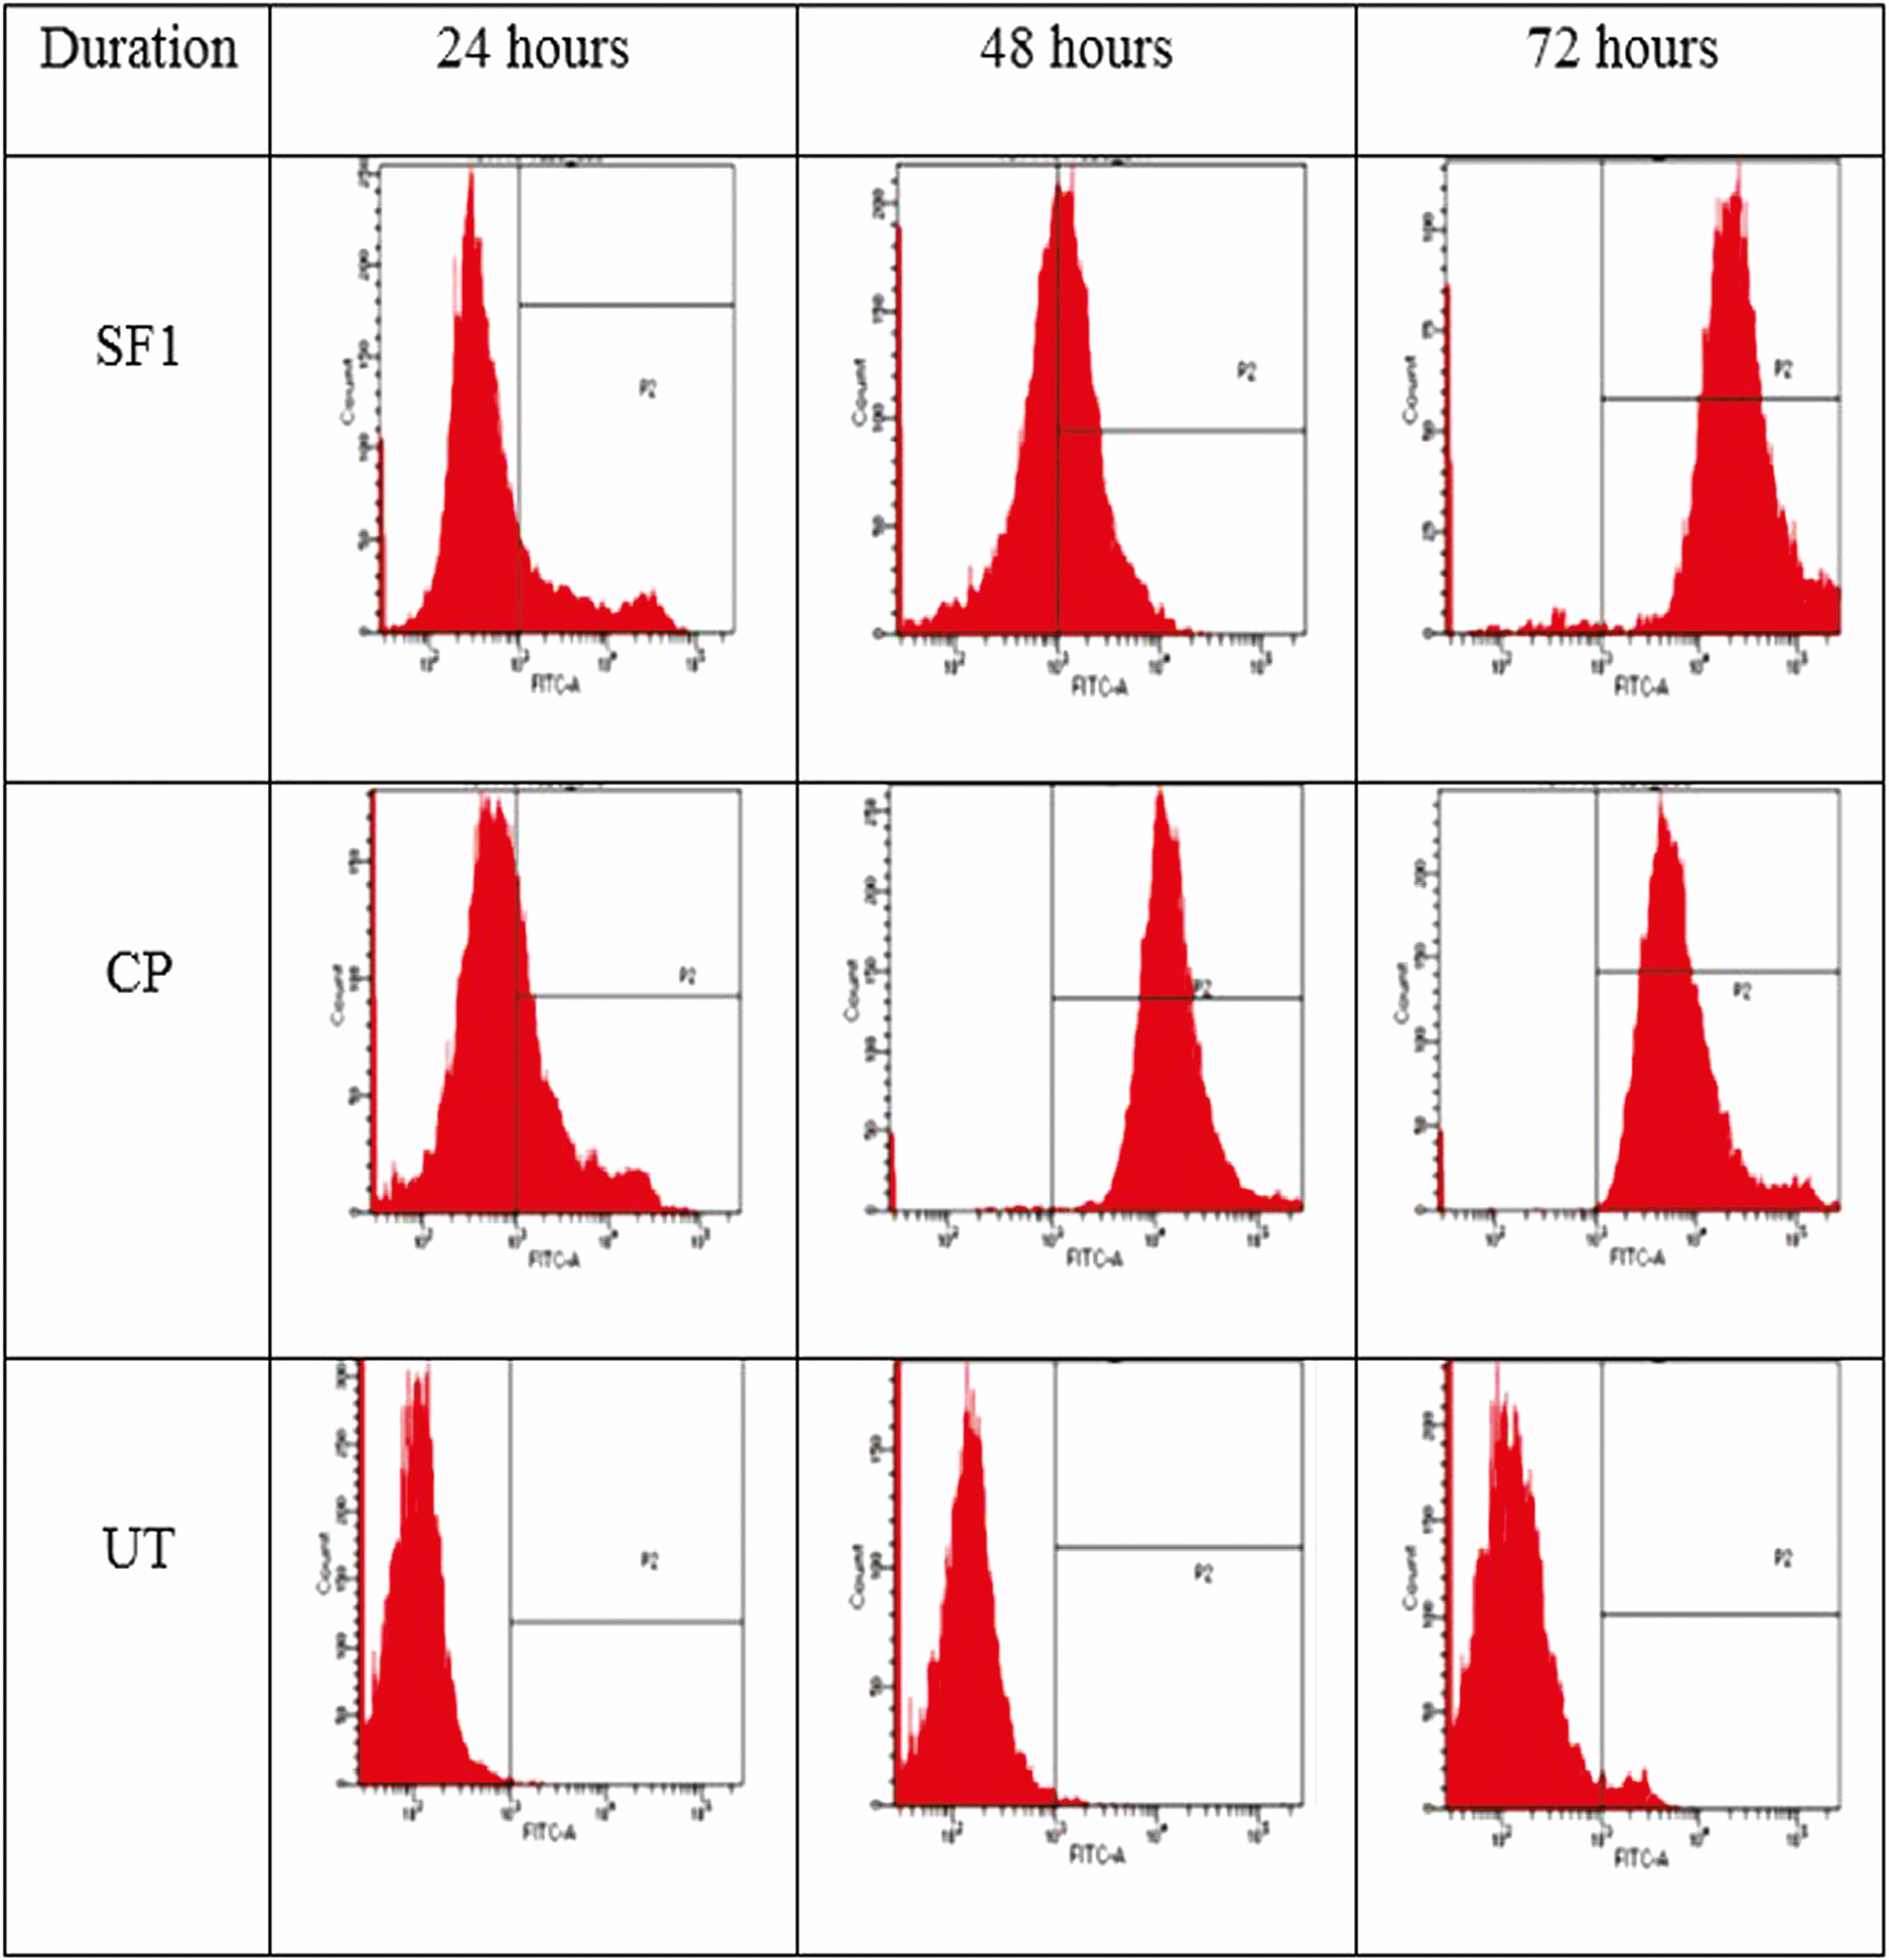 Figure 8: Histogram profile of p53 proteins expression detected by flow cytometry analysis in untreated SiHa cells (UT), standardized fraction-treated SiHa cells (SF1), and cisplatin-treated SiHa cells (CP) for 24, 48, and 72 h. Similar profile was observed in three independent experiments (<i>n</i> = 3)